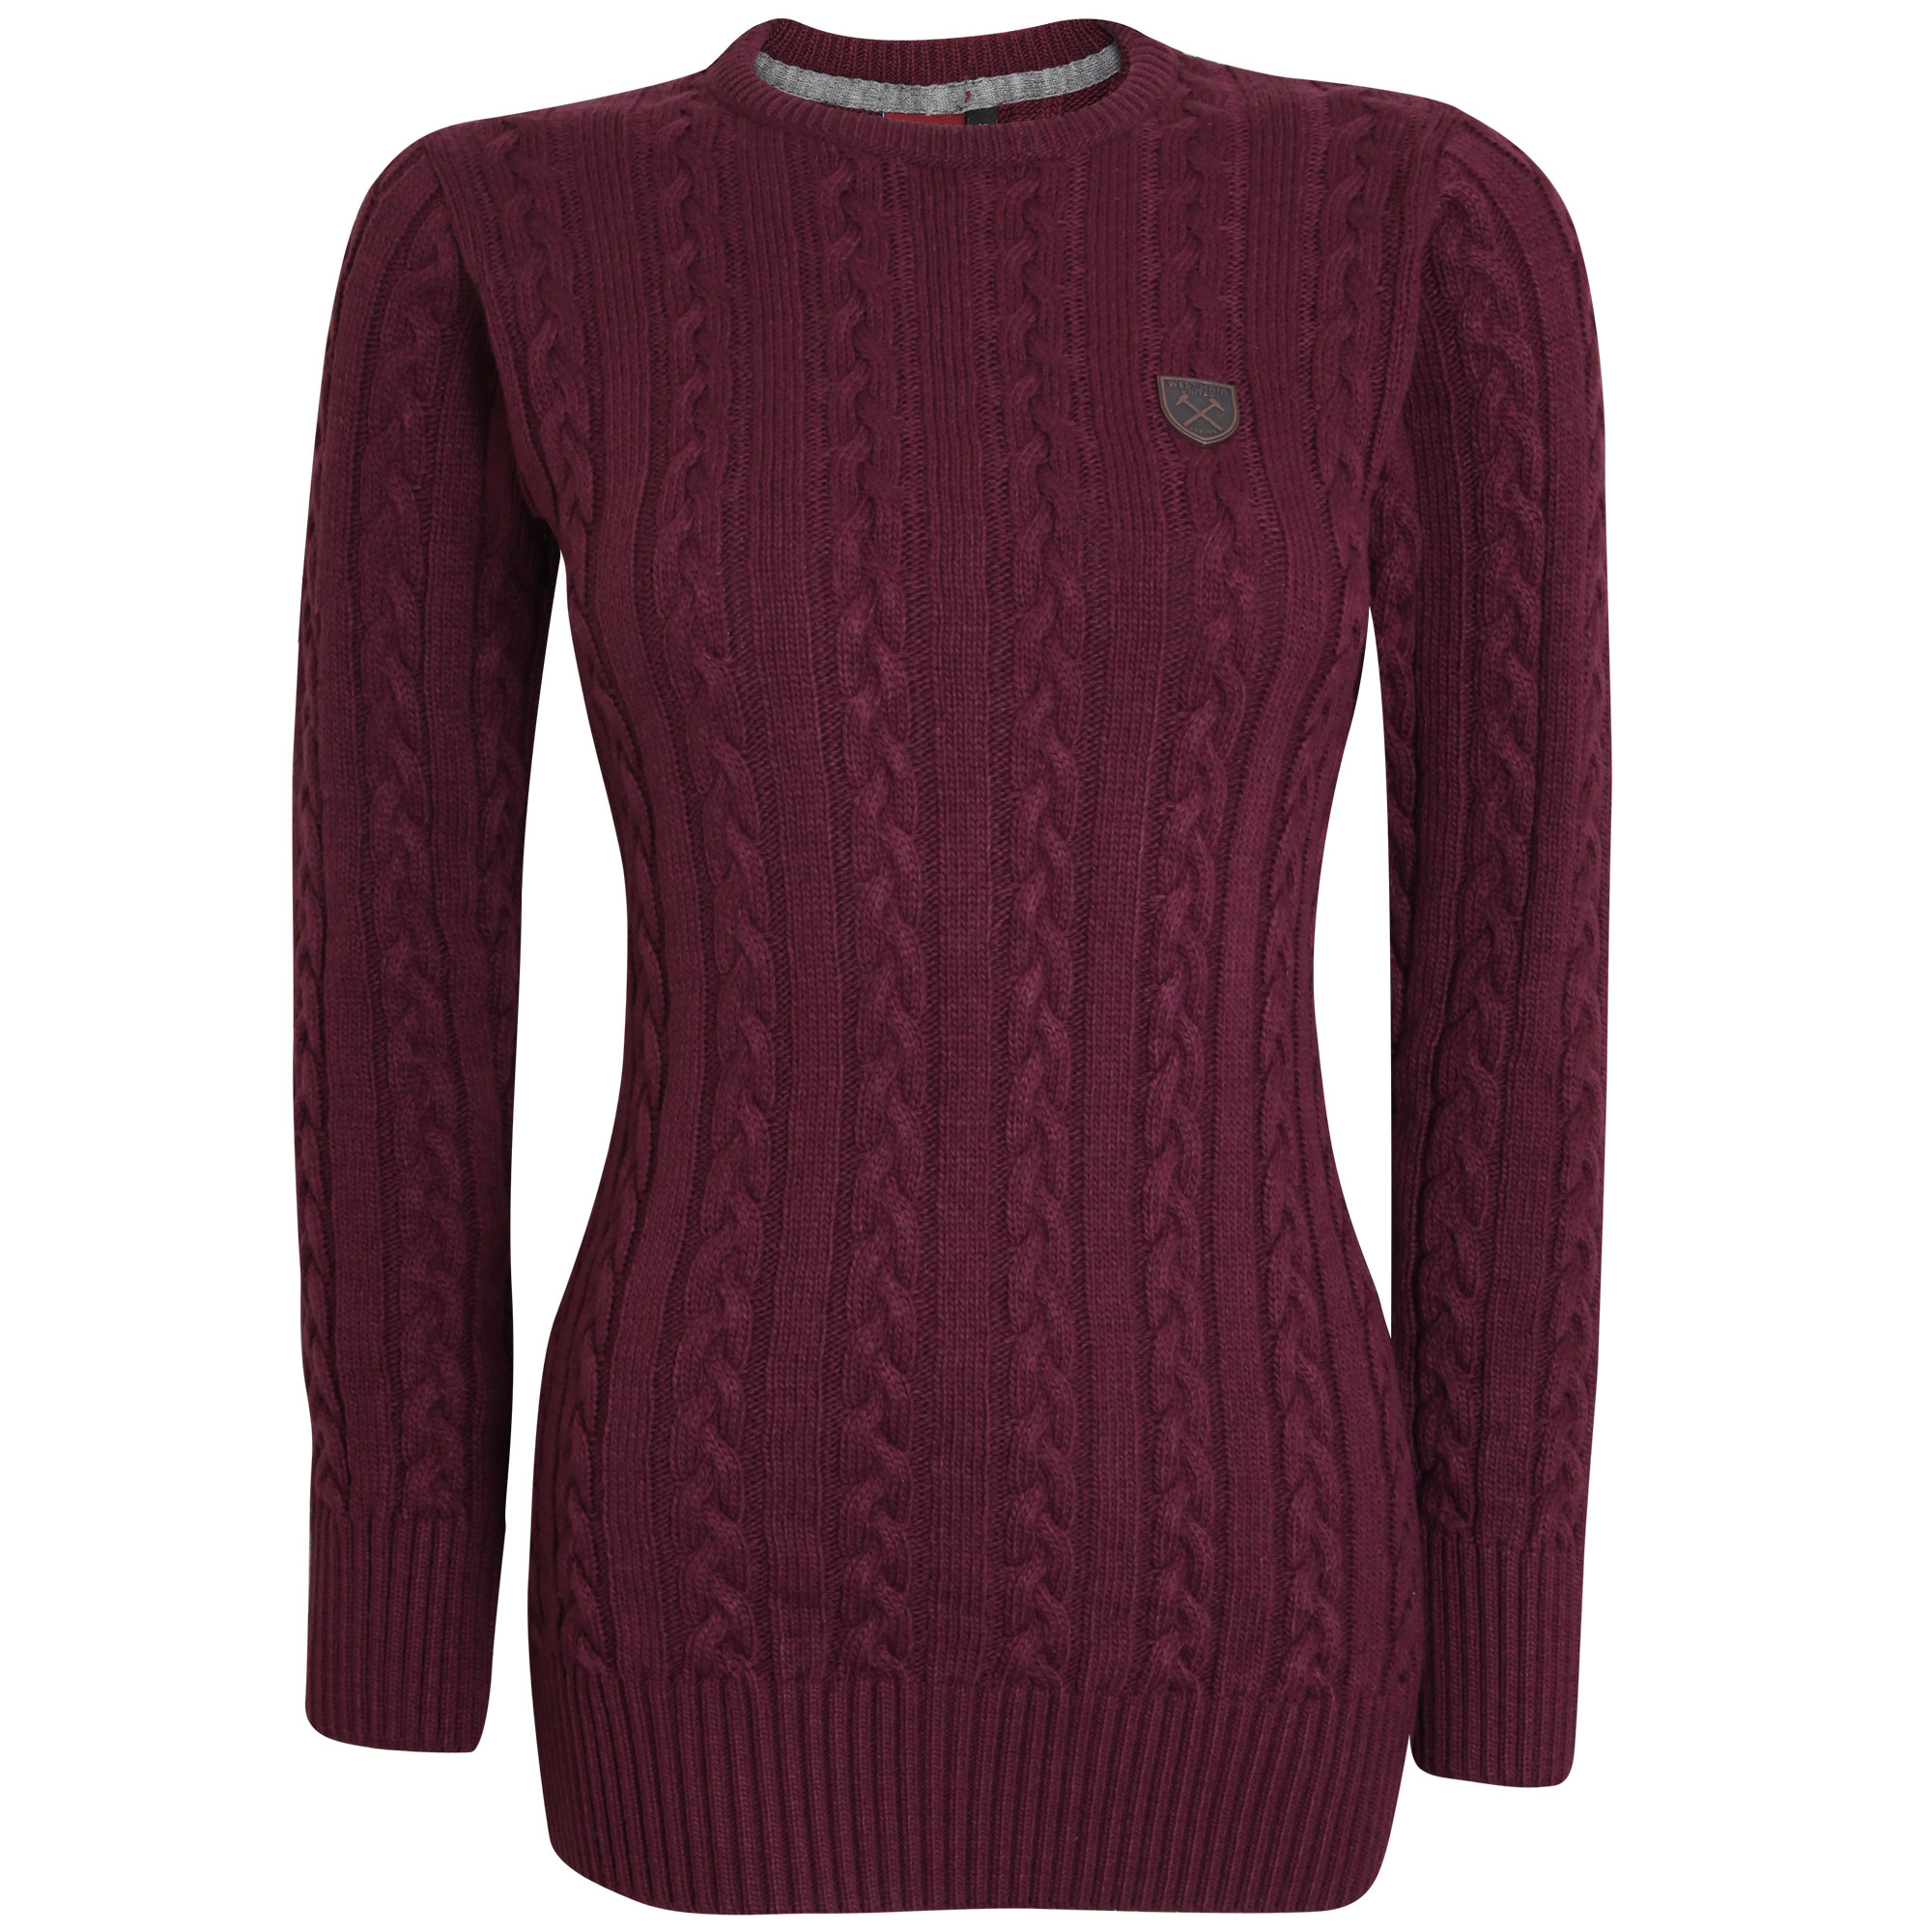 LADIES CLARET CABLE KNIT JUMPER